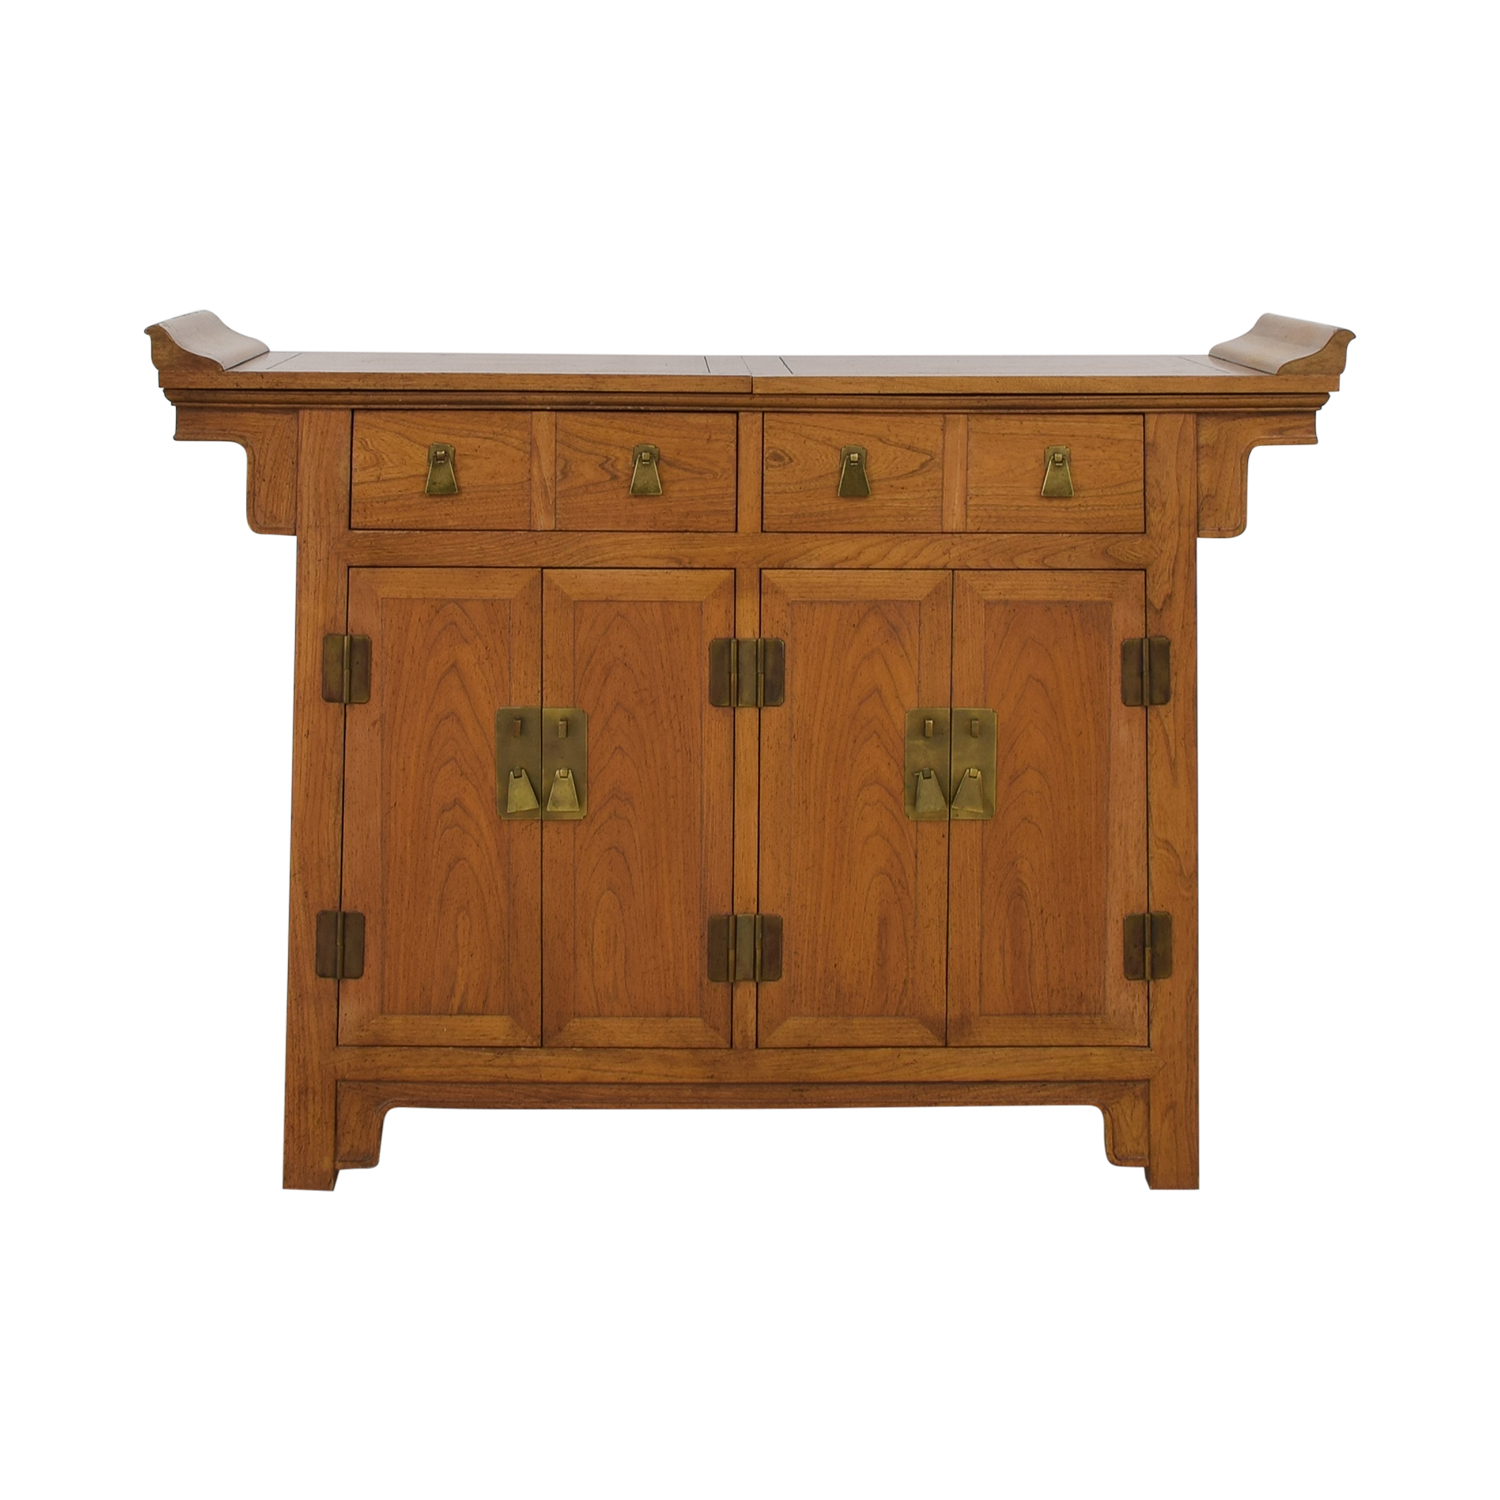 Baker Furniture Michael Taylor for Baker Furniture Bar Cabinet Storage